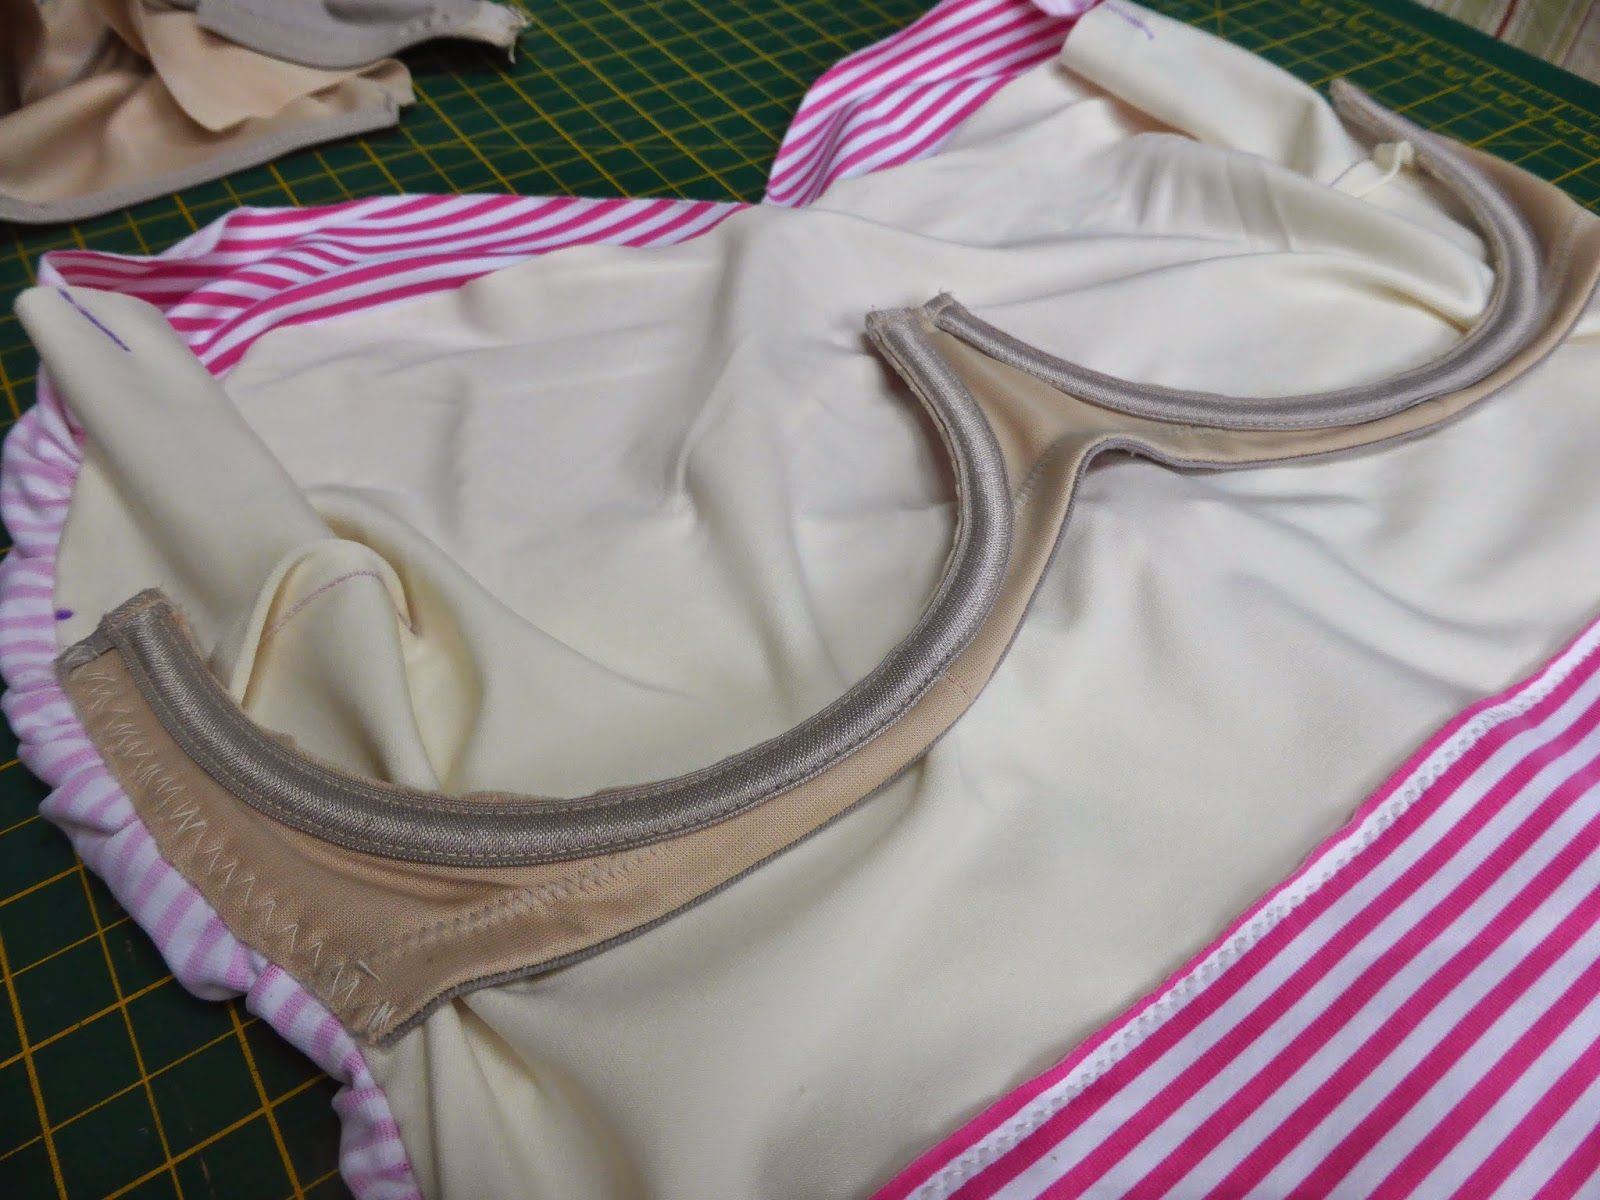 5210d2c45e7fa Jo sews  Adding support to the Bombshell Swimsuit for Bigger Boobs Sewing  Bras